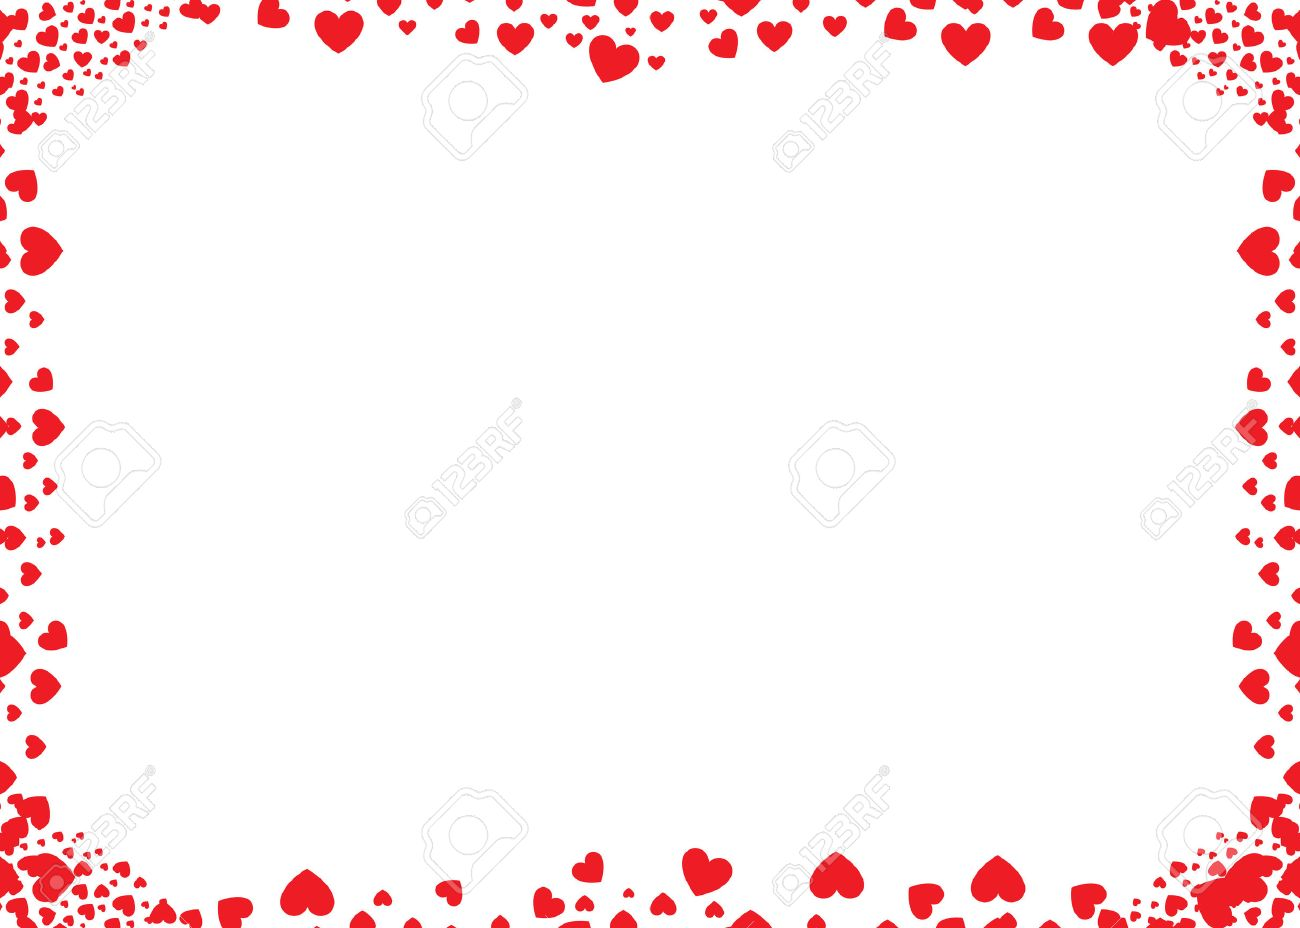 Vector Frame Of Red Hearts Royalty Free Cliparts, Vectors, And Stock ...